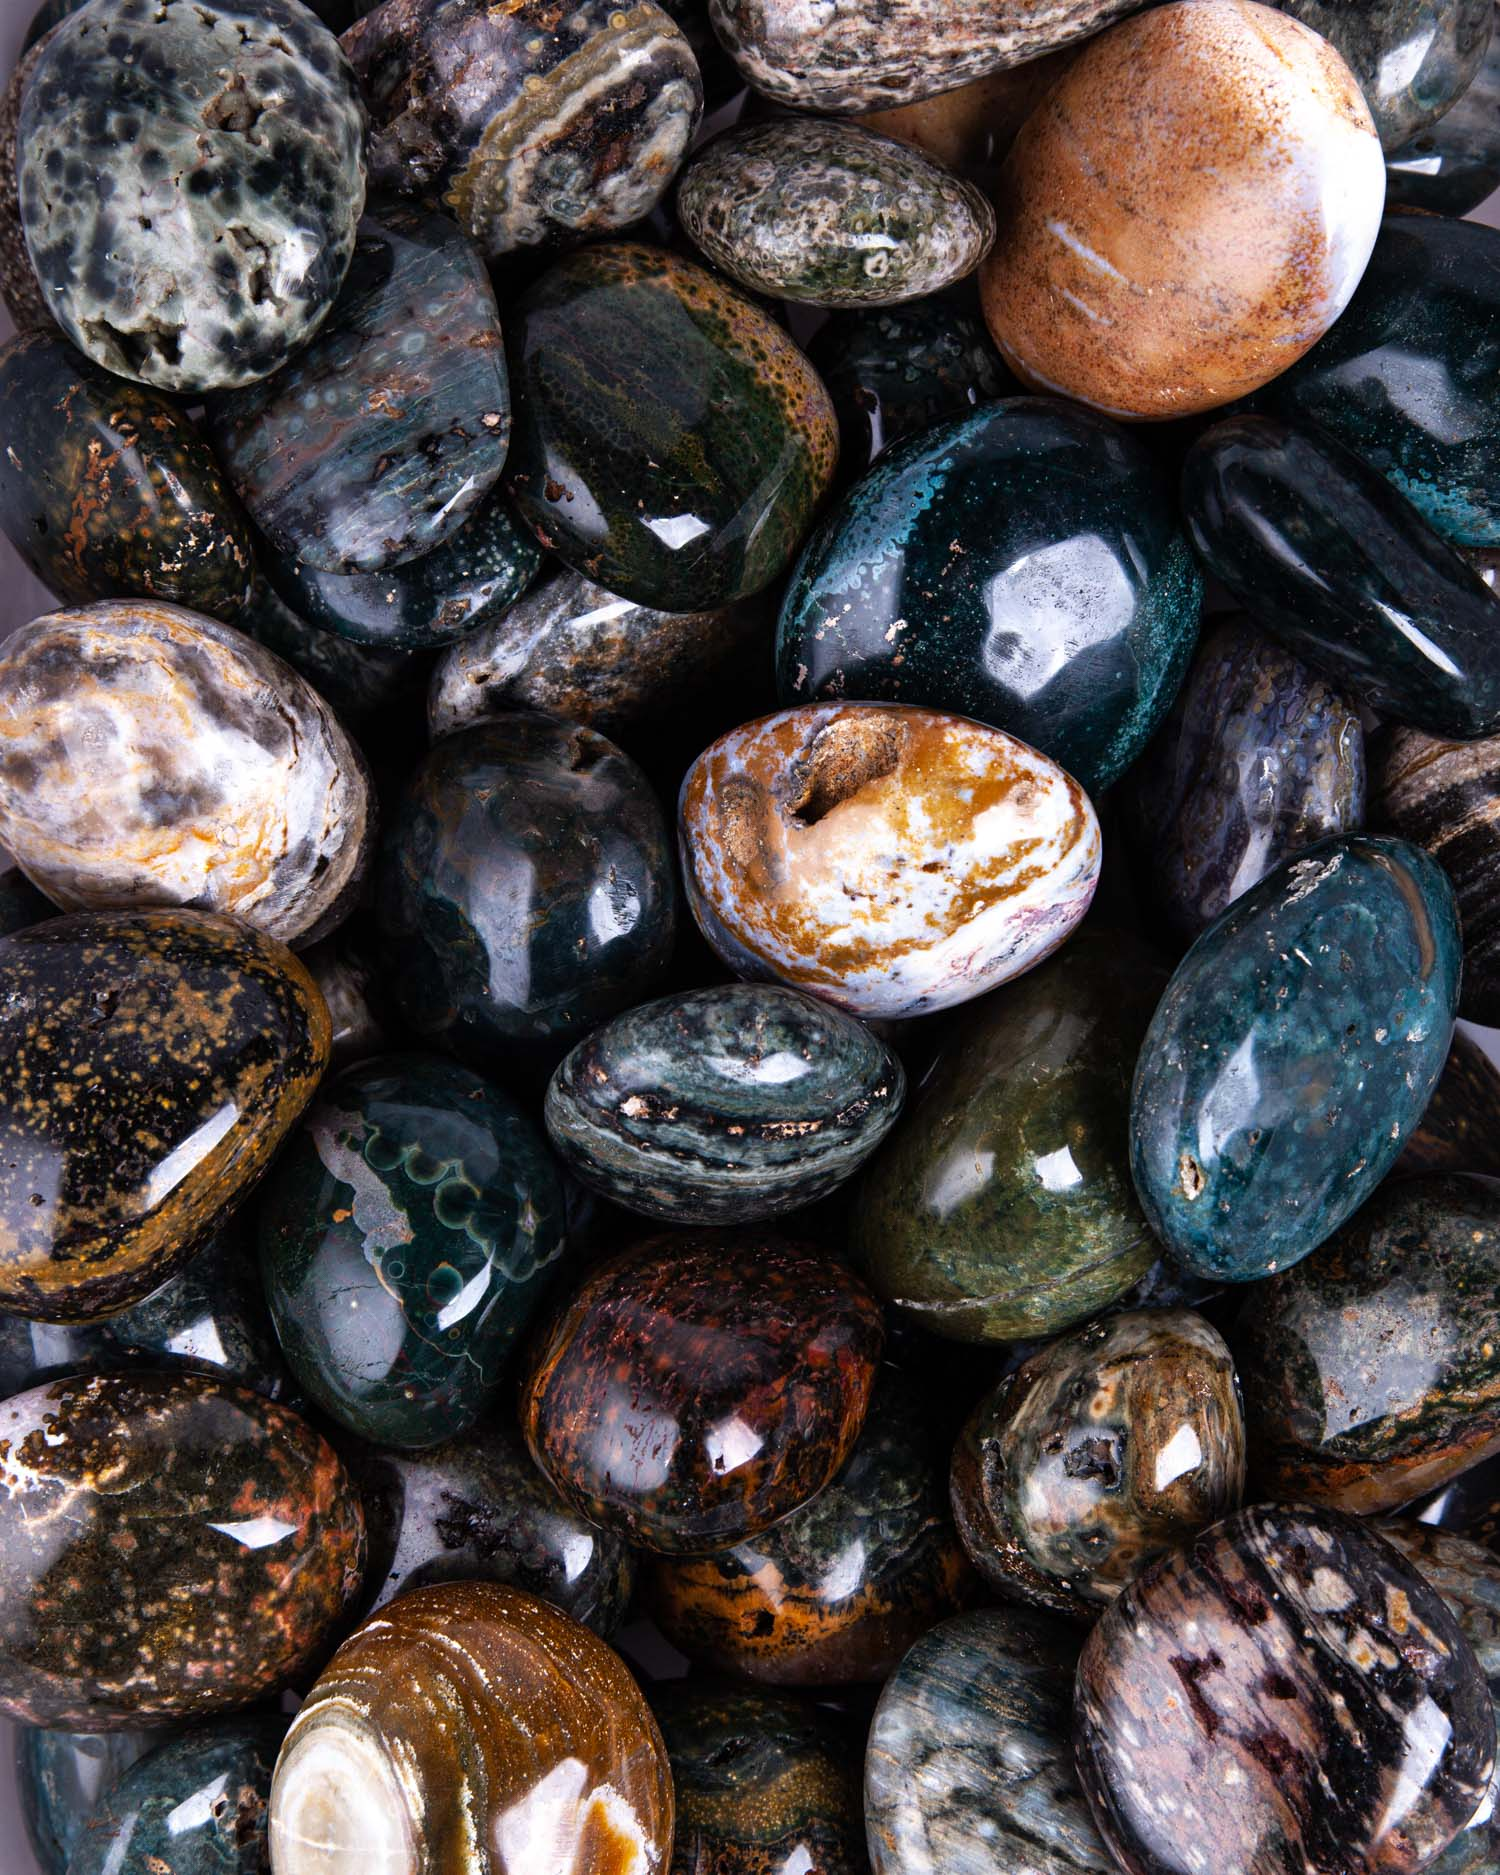 Natural Large Ocean Jasper Crystal TowerPalm Stones pointChakraReikiZenFeng ShuiMeditationSpecial GiftHealing crystal